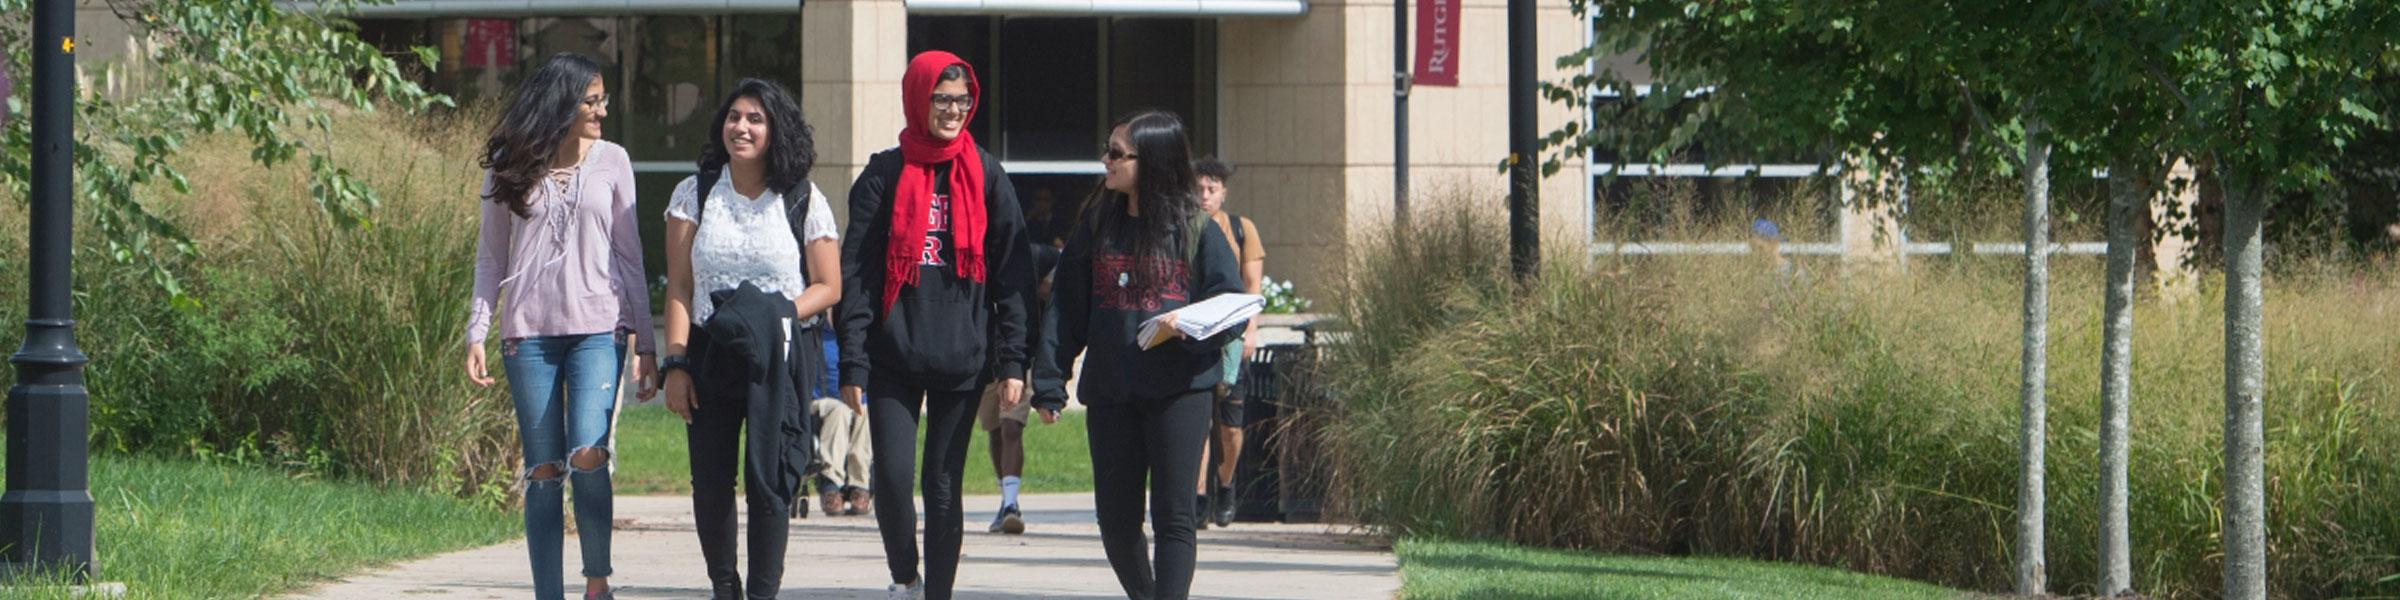 Four students stroll through Livingston campus.